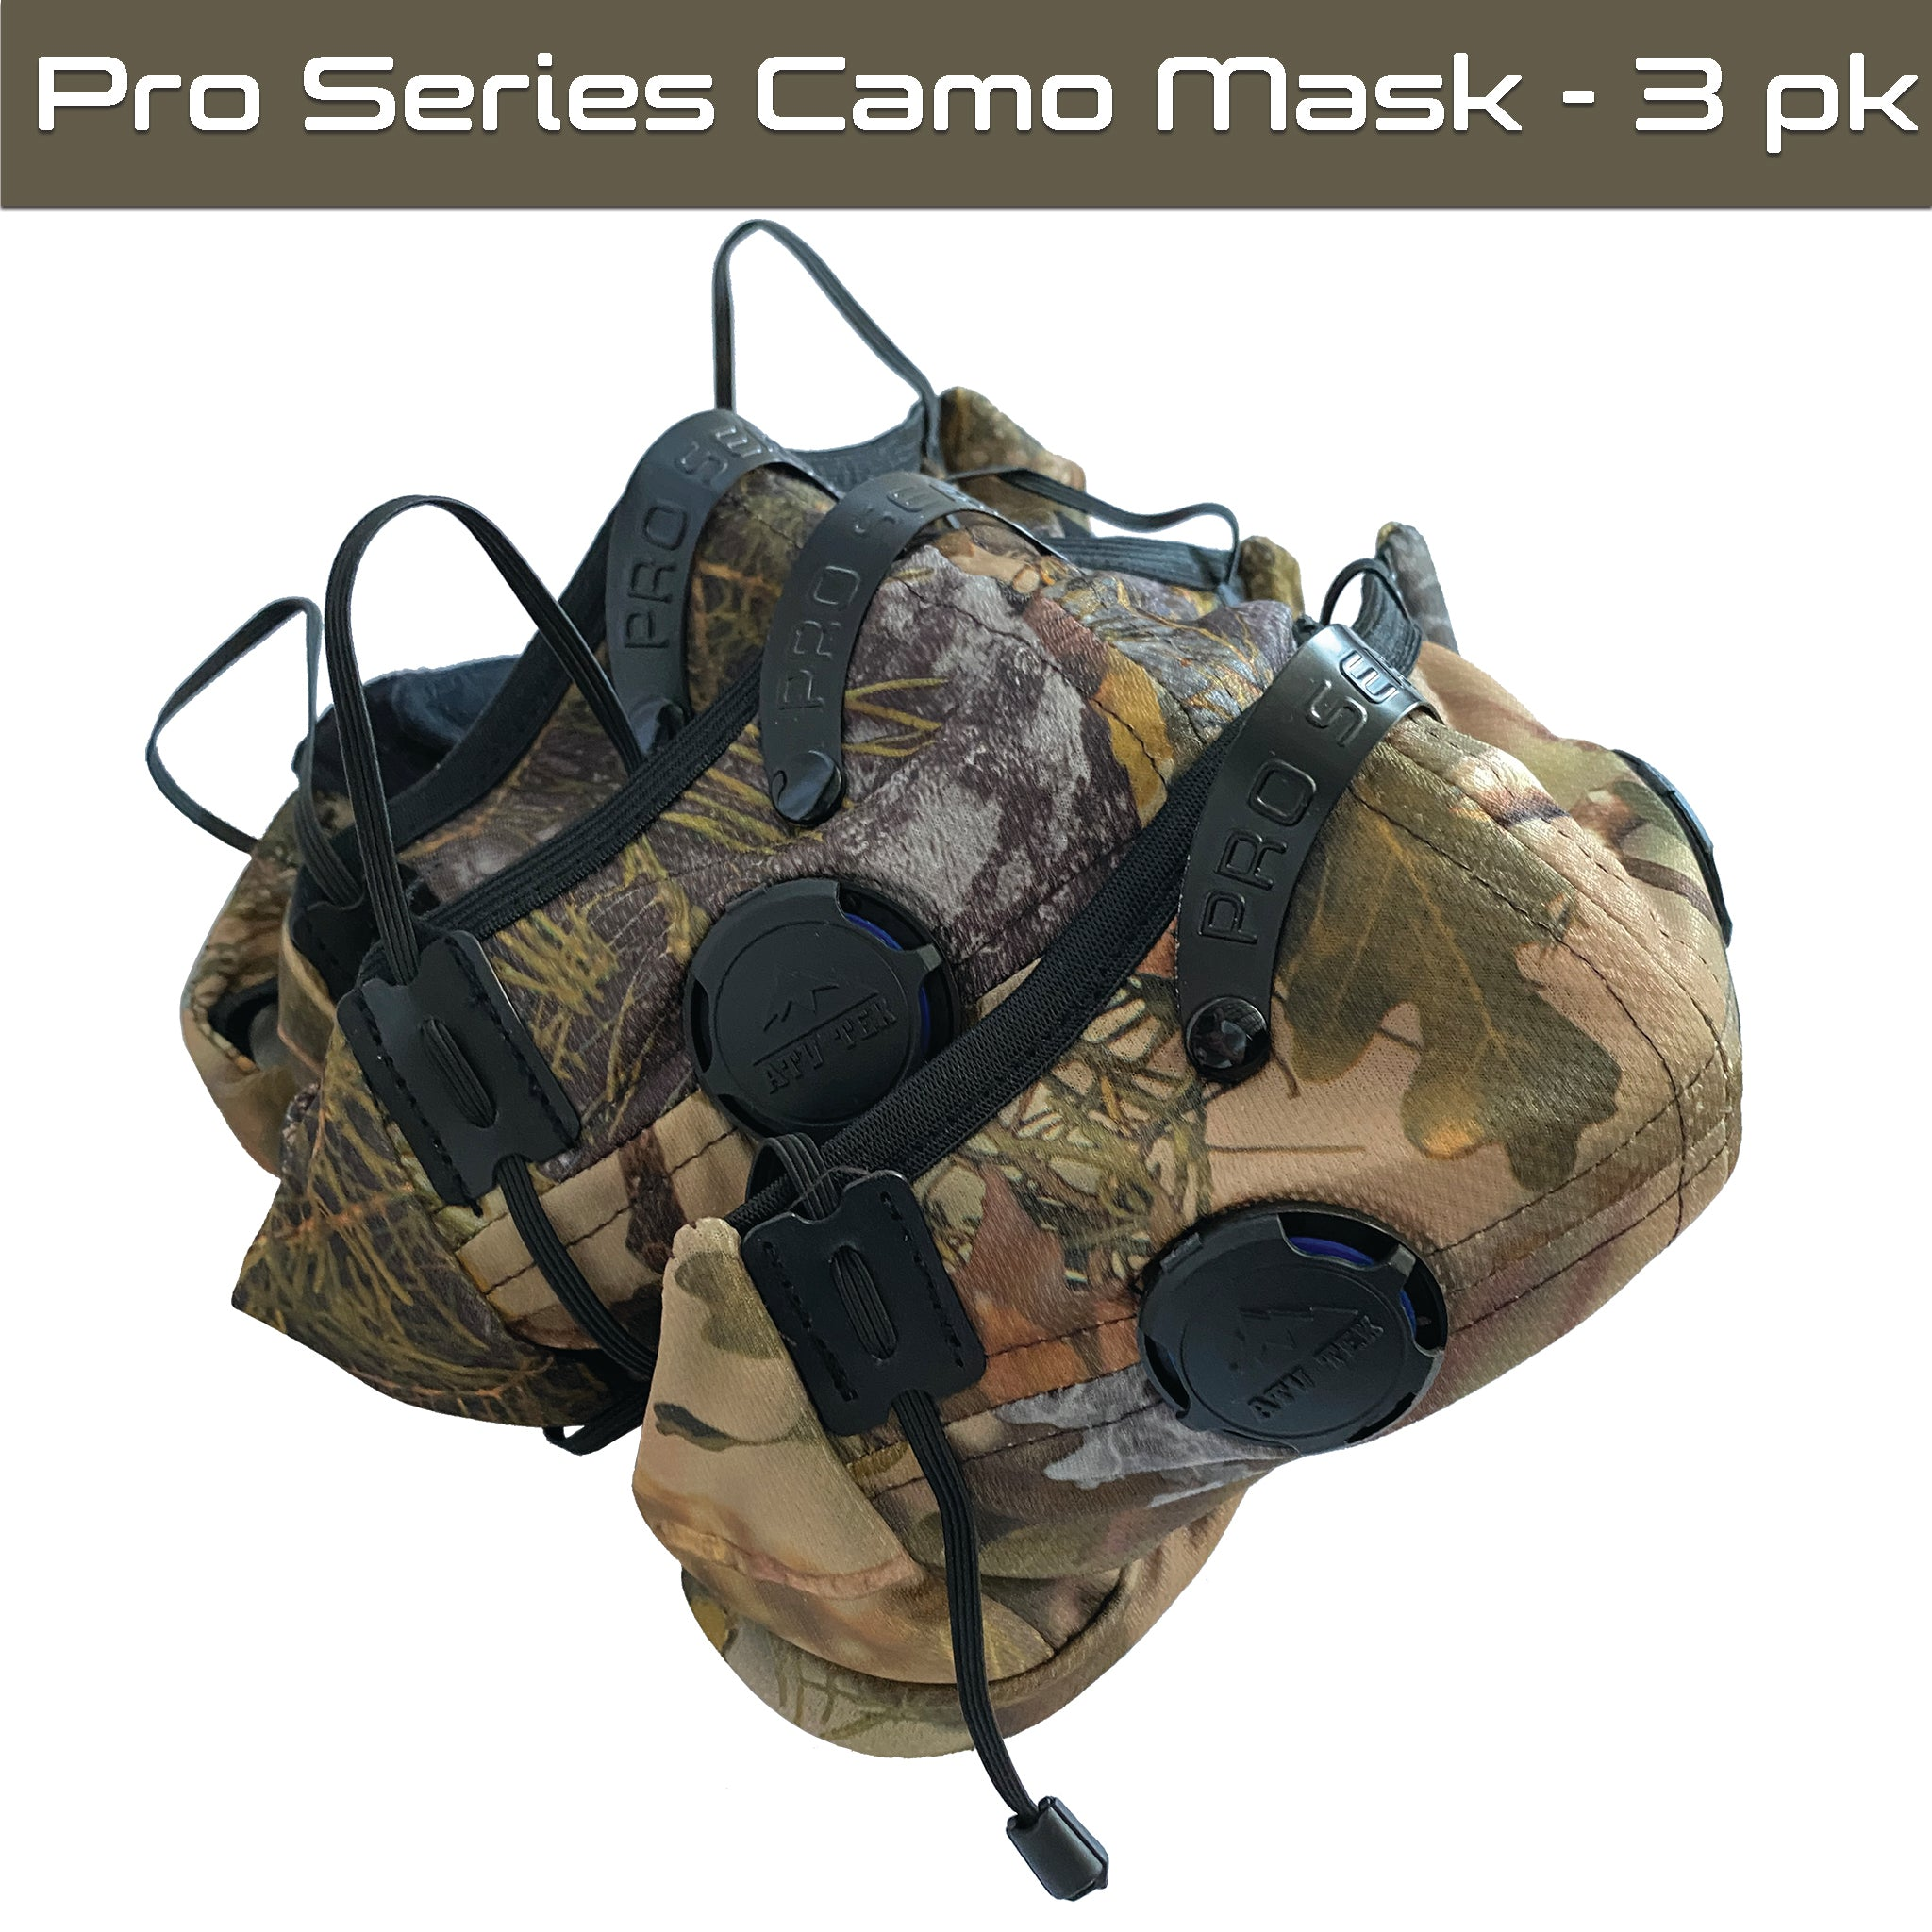 Pro Series Rider & Safety Dust Mask - 3 Pack - Camo